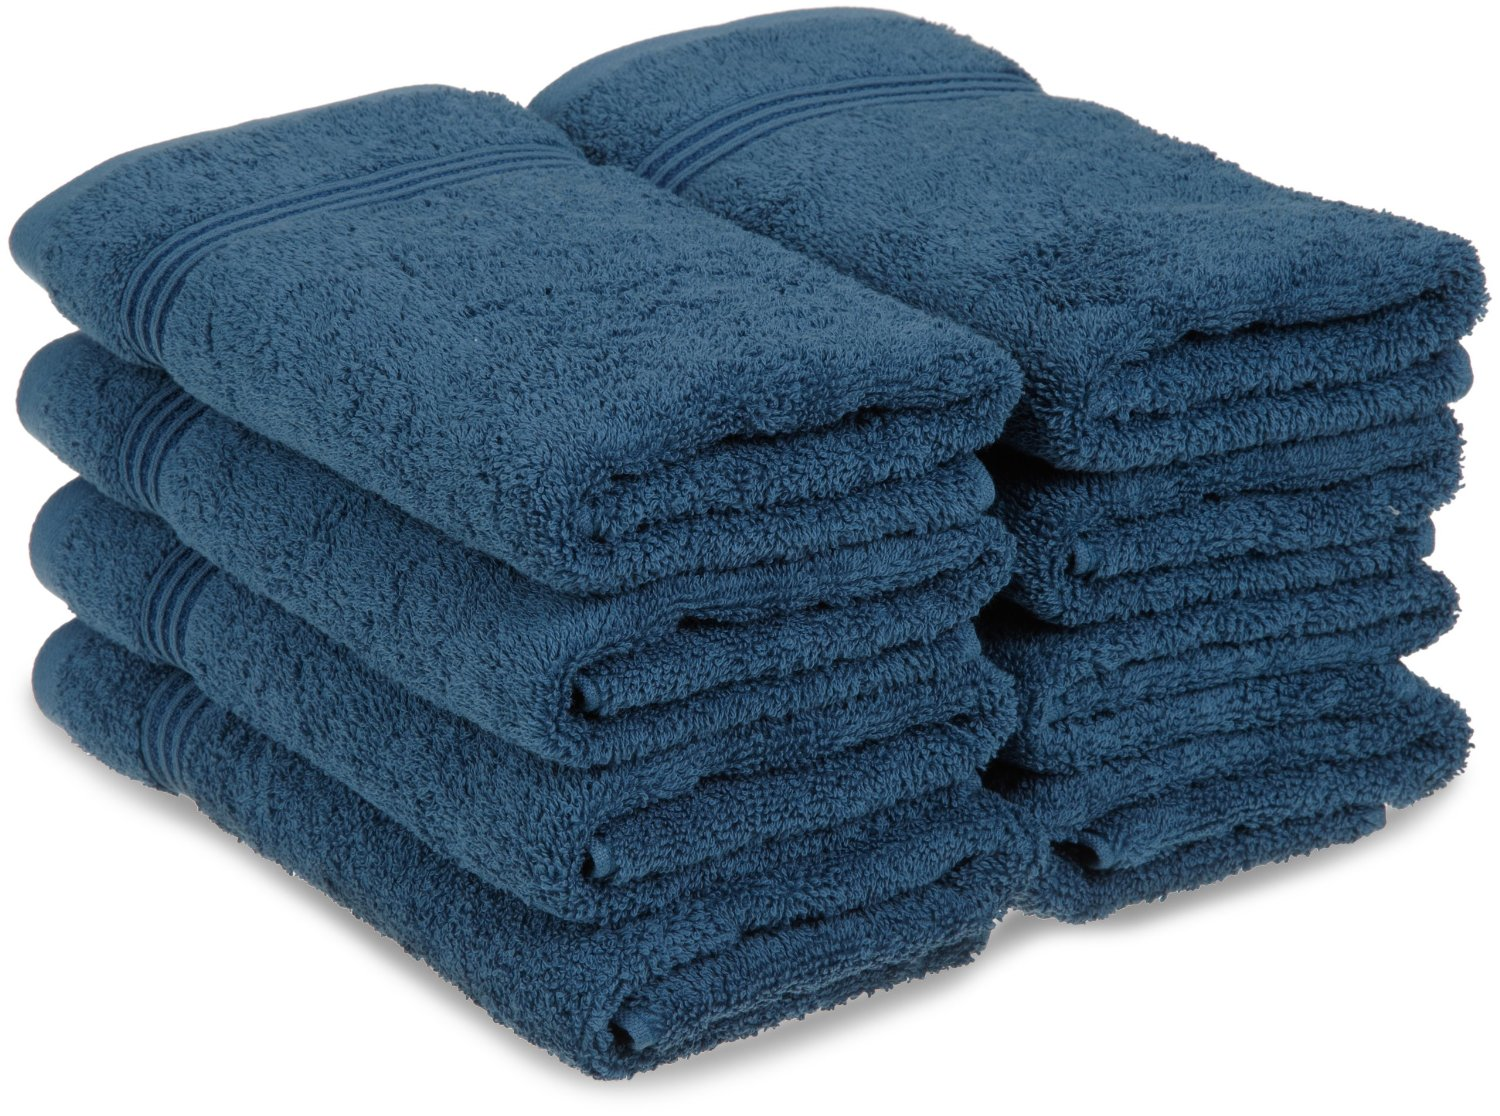 Egyptian Cotton 8PC Hand Towels